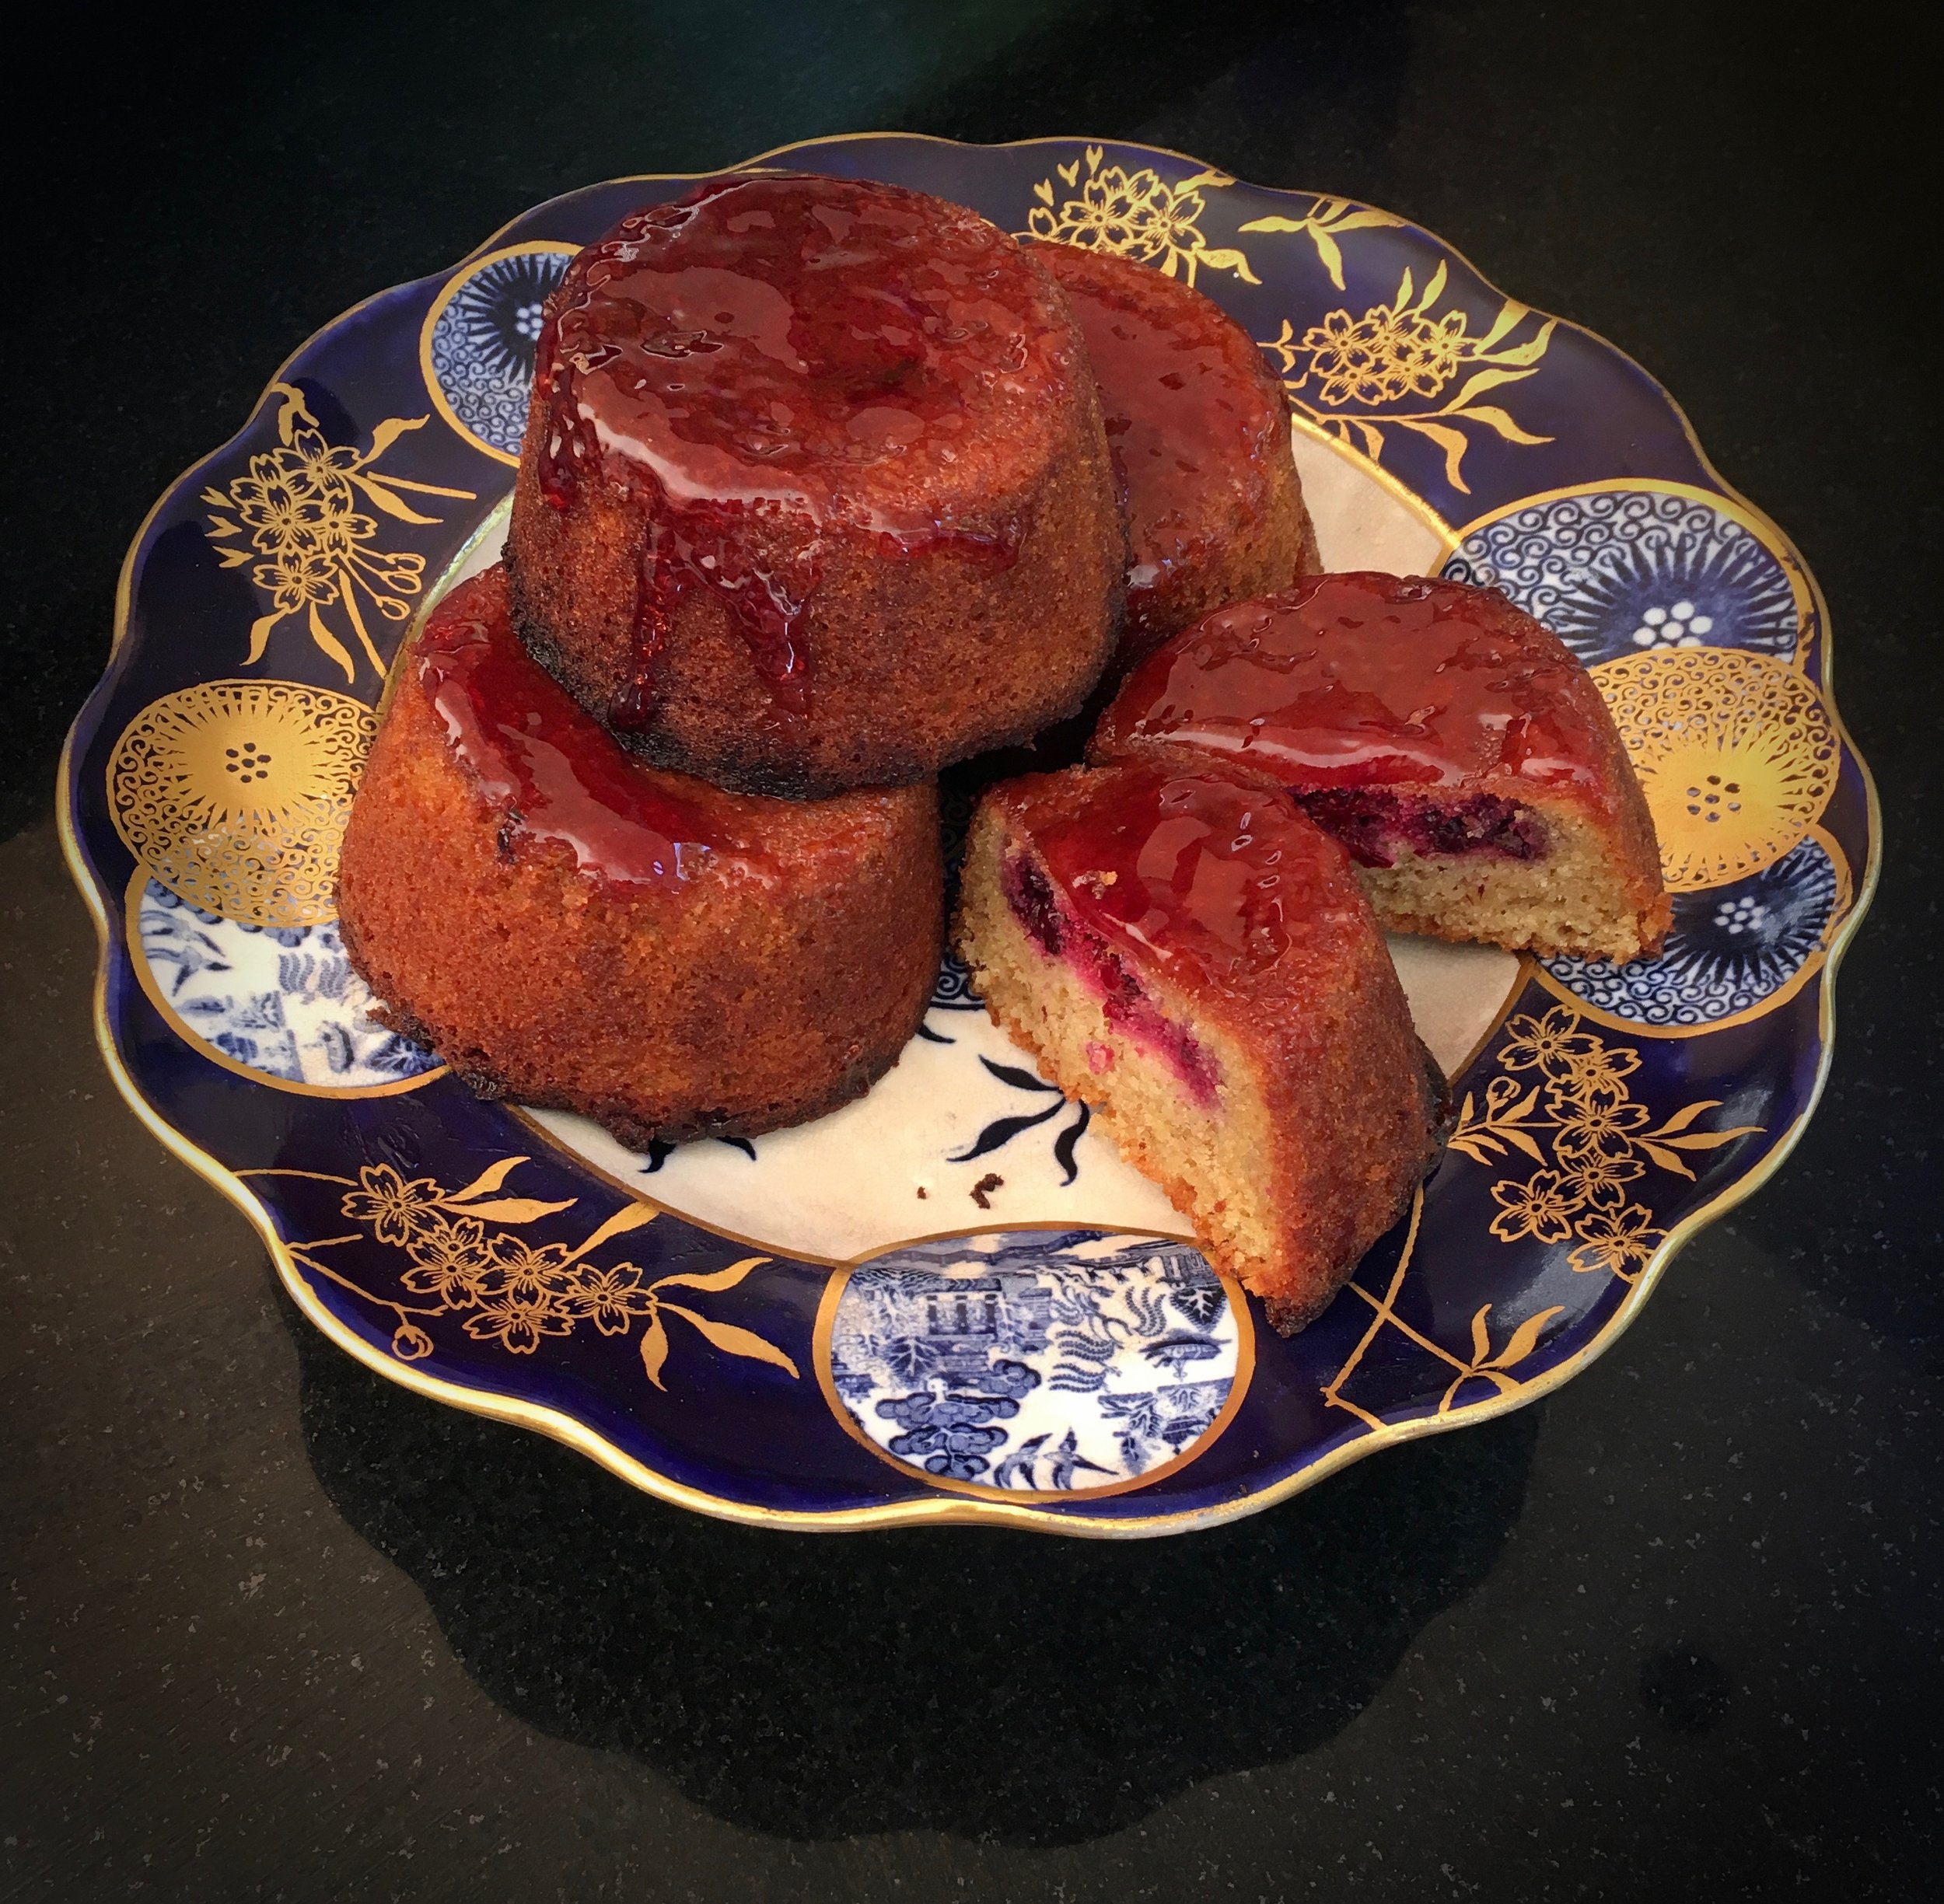 Blackberry Babycakes w/ Port Glaze